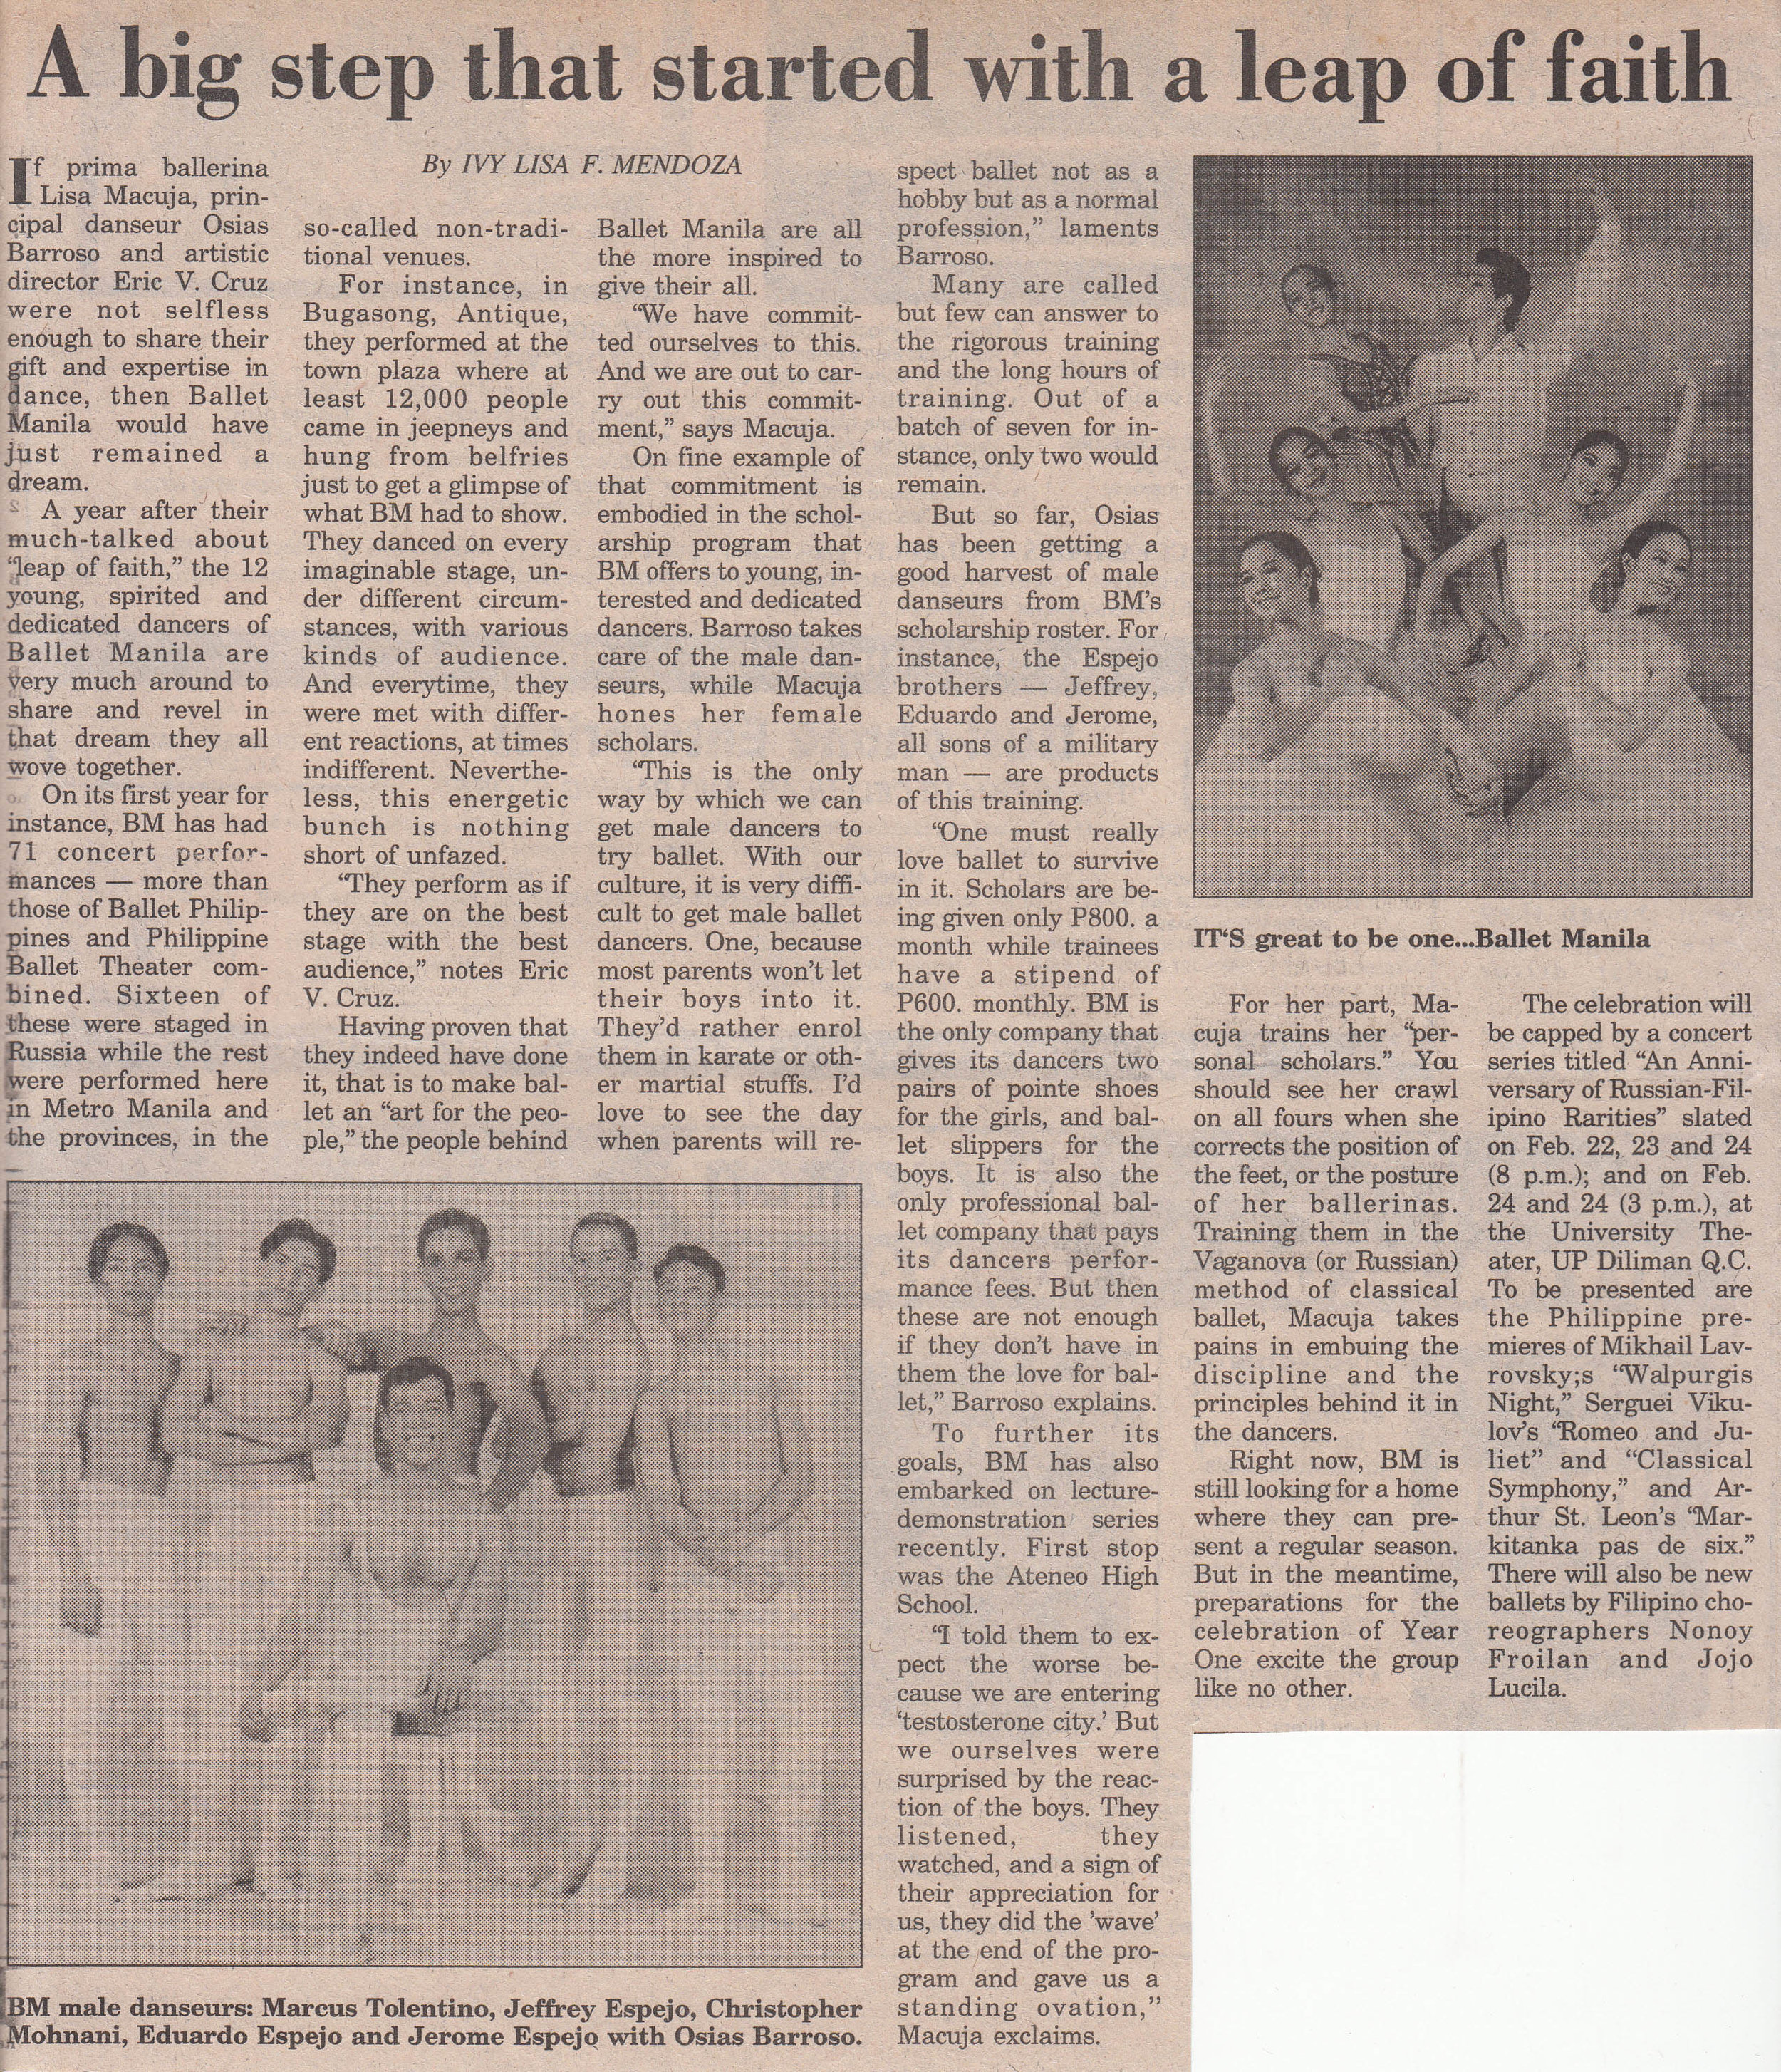 A story in the Manila Bulletin reveals what the group of pioneering dancers managed to achieve in its first year. From the Ballet Manila Archives collection